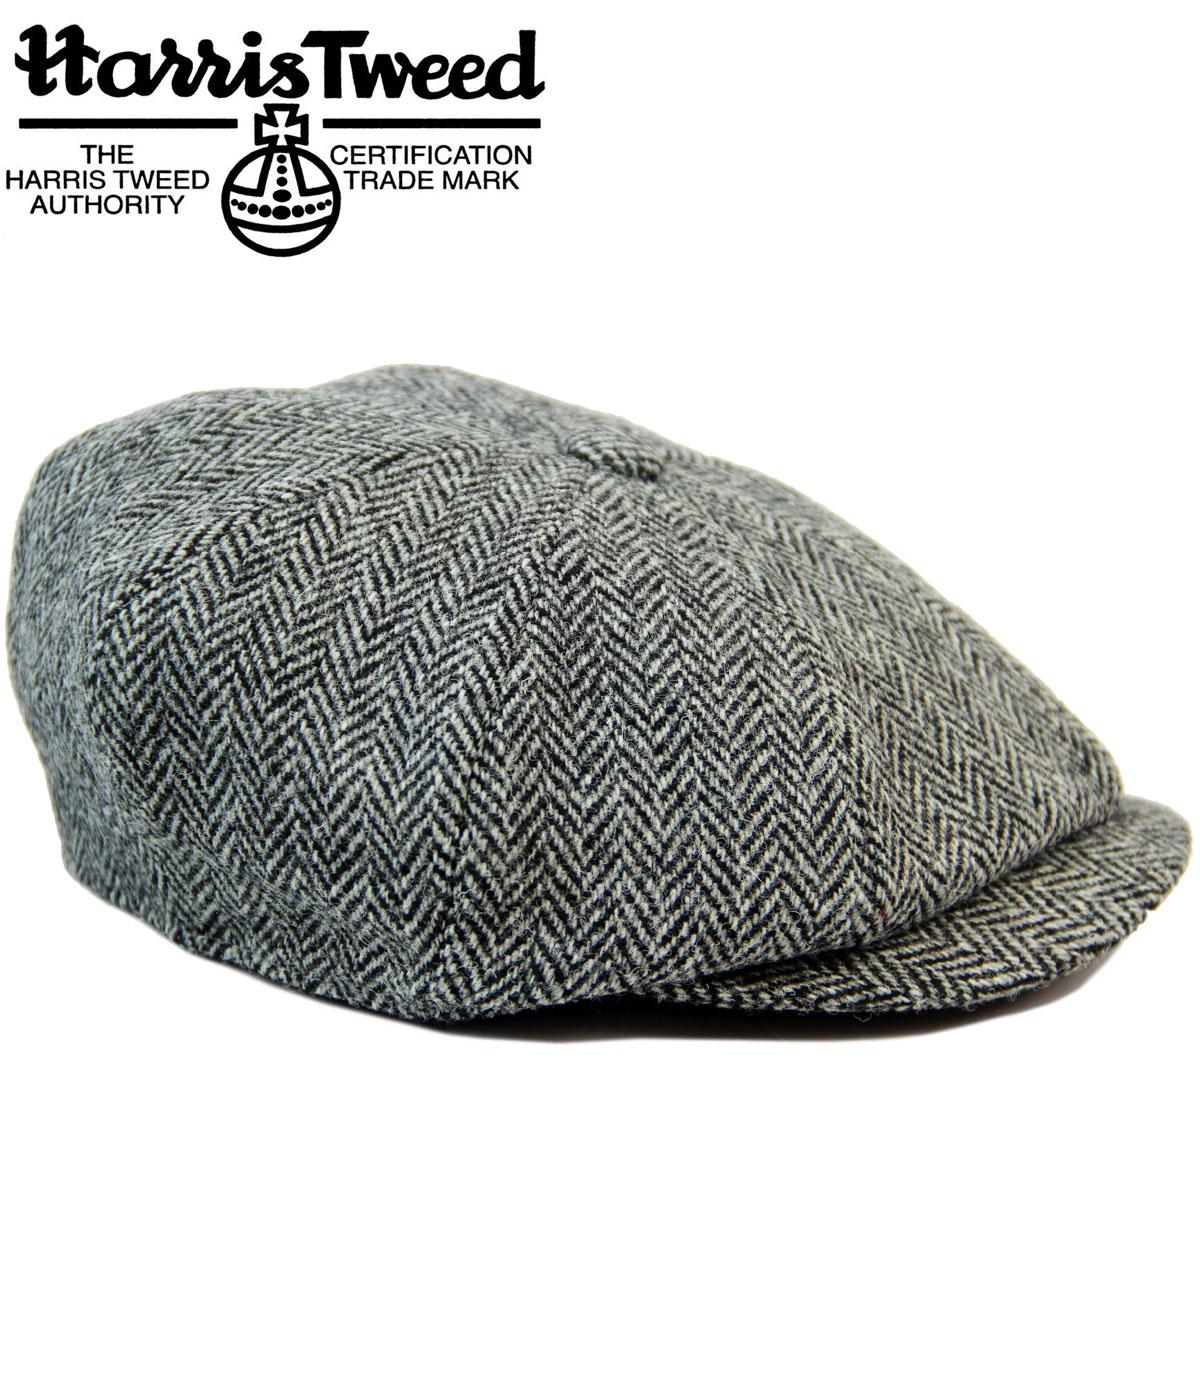 7c1ca04eb2a Carloway FAILSWORTH Harris Tweed Retro Gatsby Cap in Black